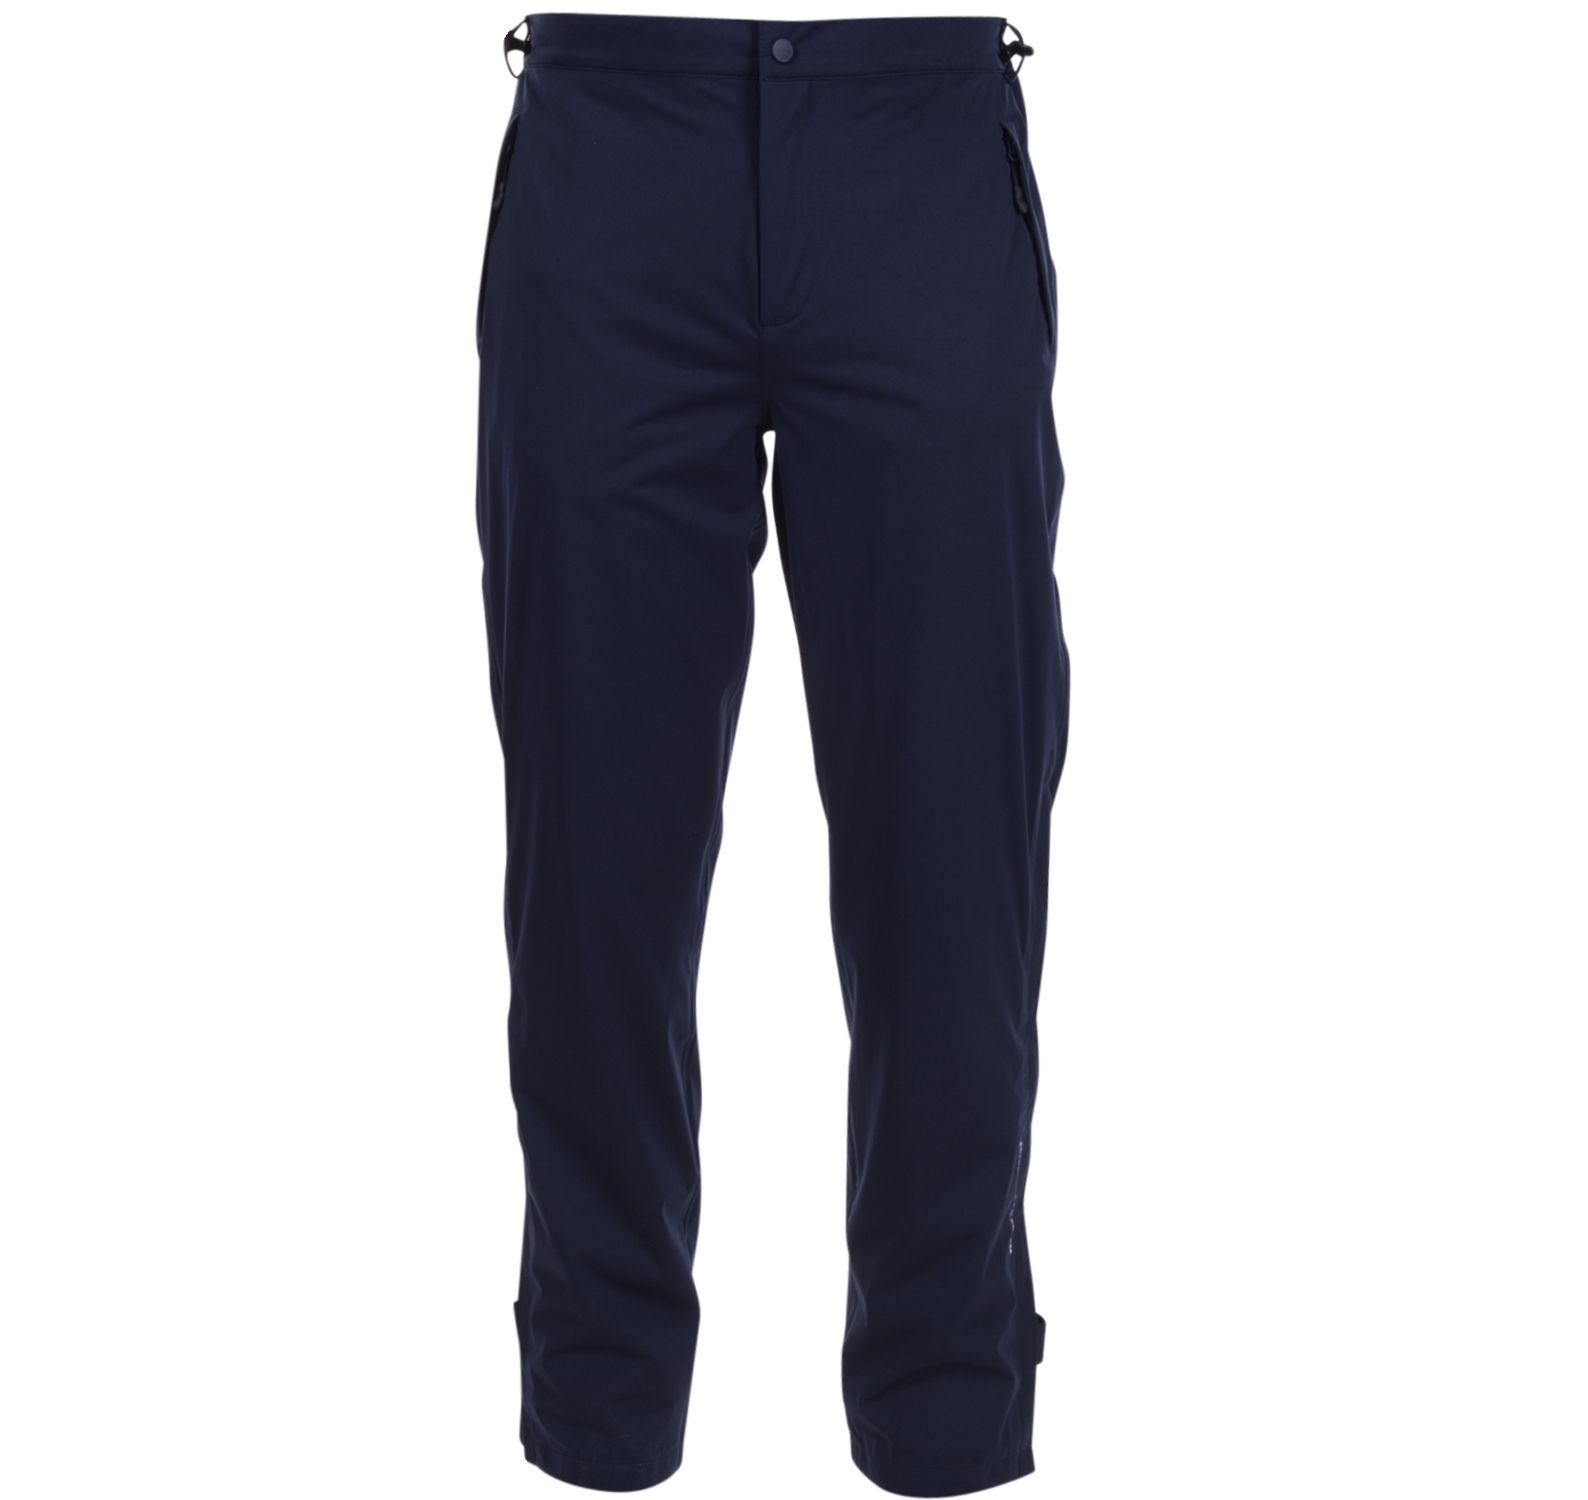 On Course Pants, Dk Navy, 2xl, Regnkläder